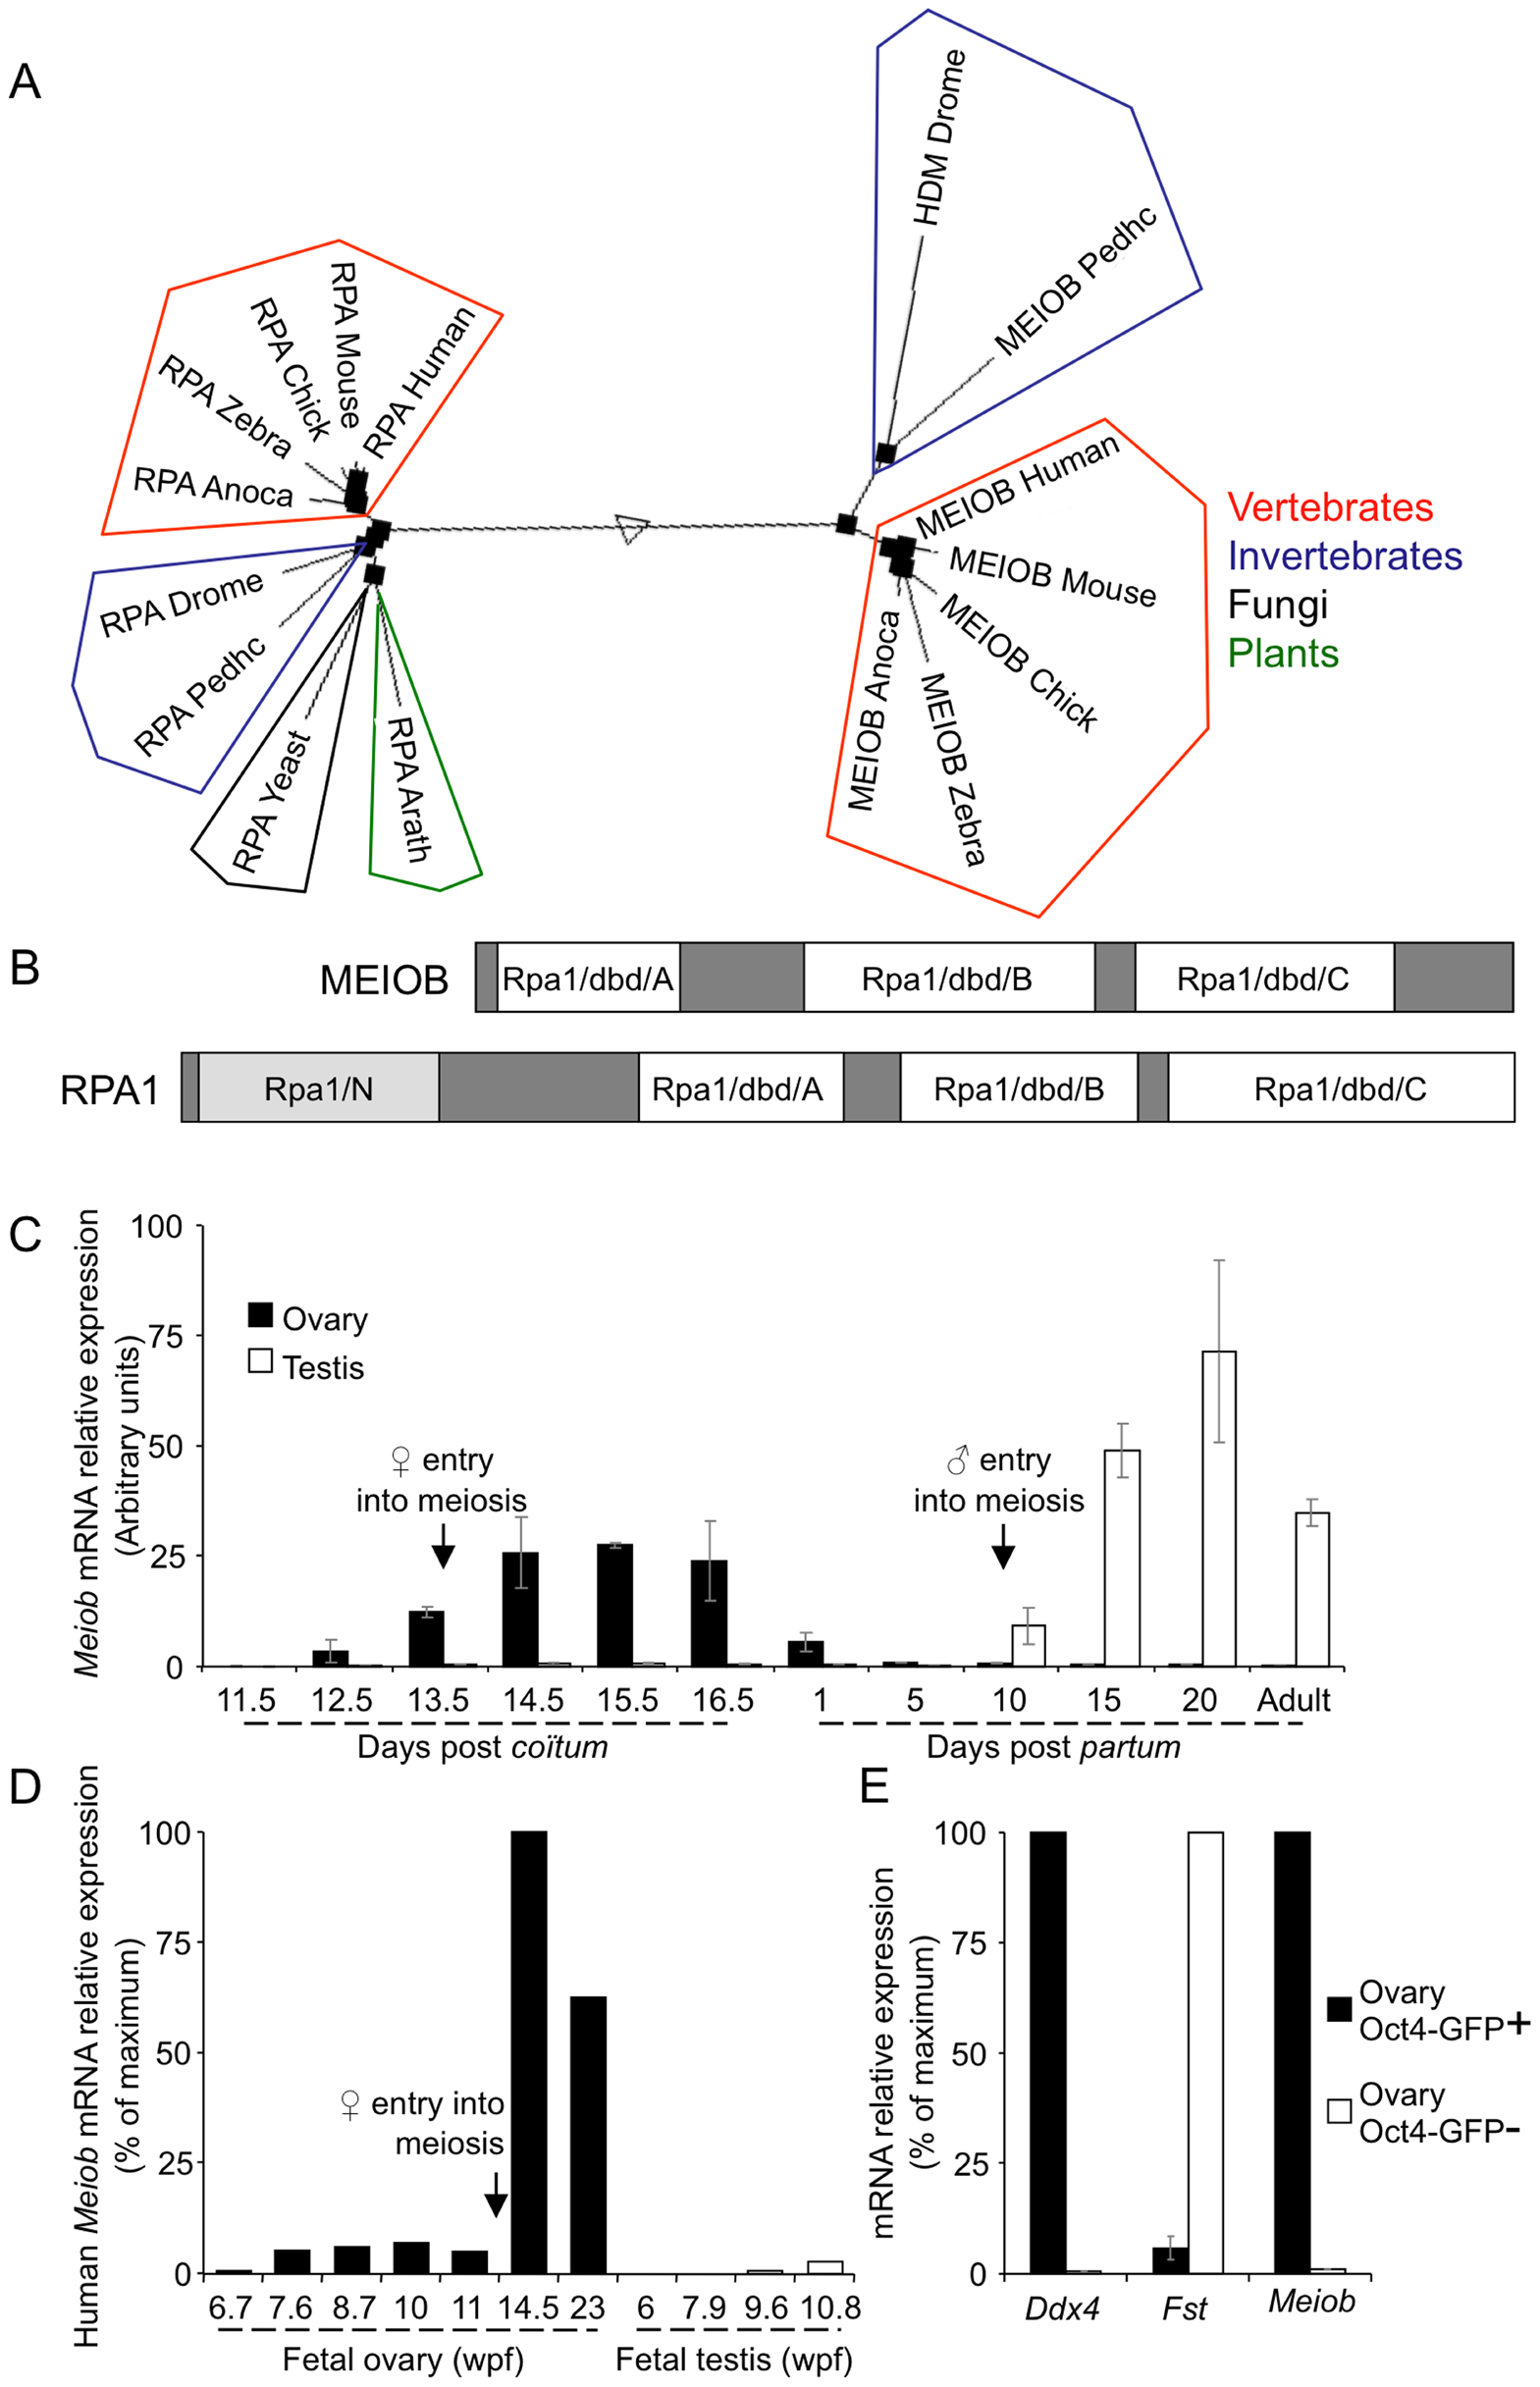 MEIOB is evolutionarily conserved and expressed in meiotic cells.